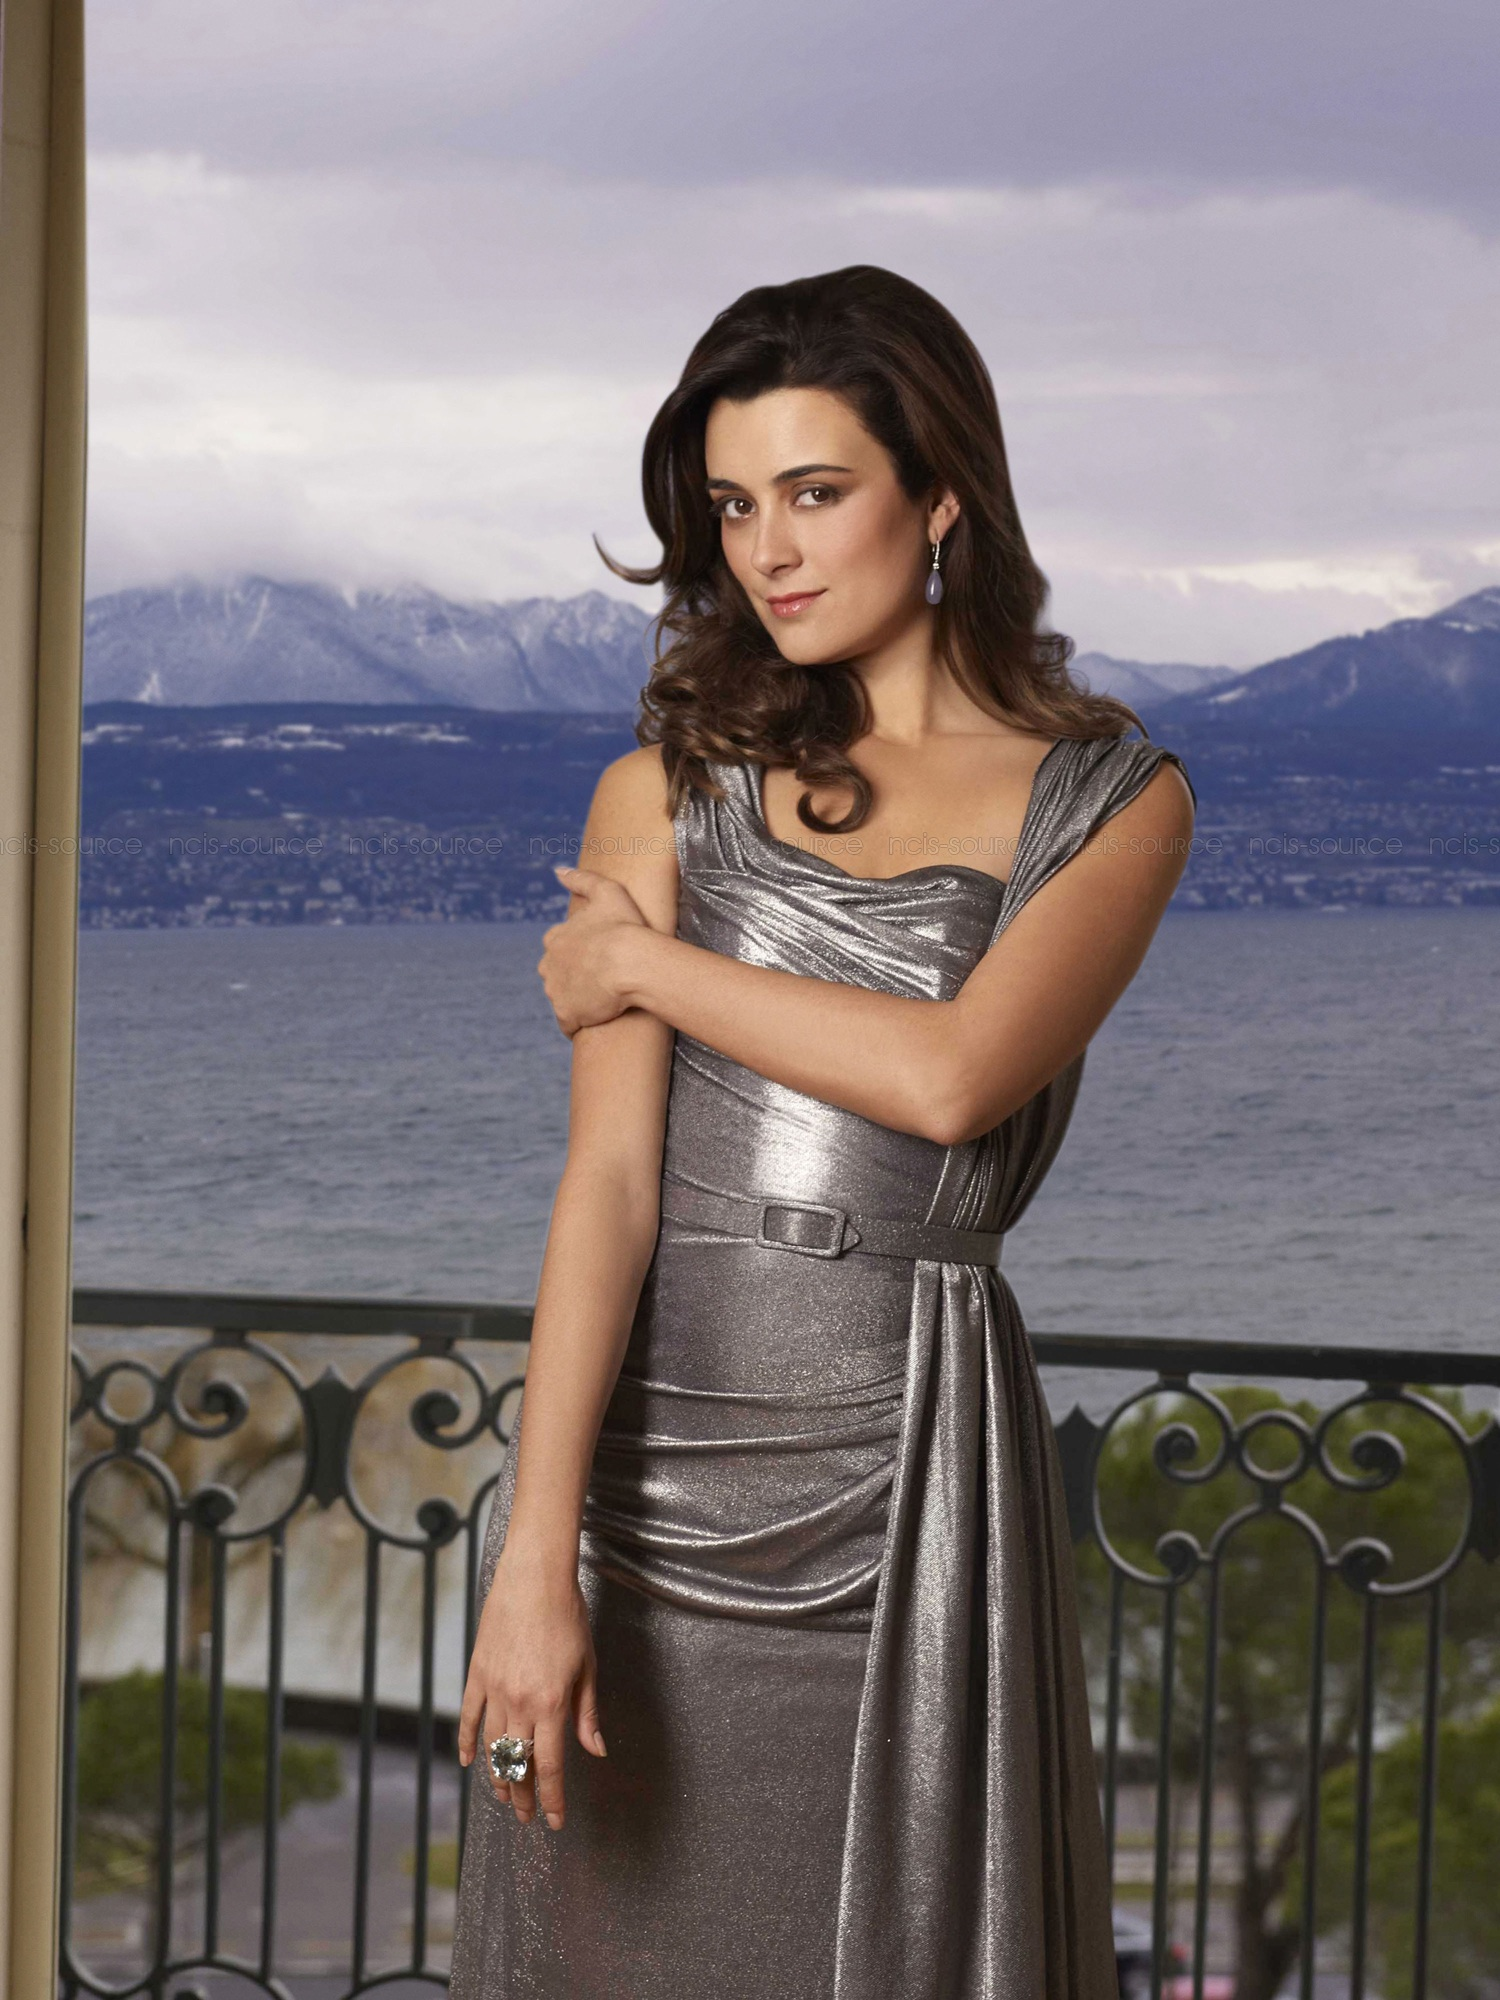 42 Hot Pictures Of Cote De Pablo From NCIS Will Raise Your